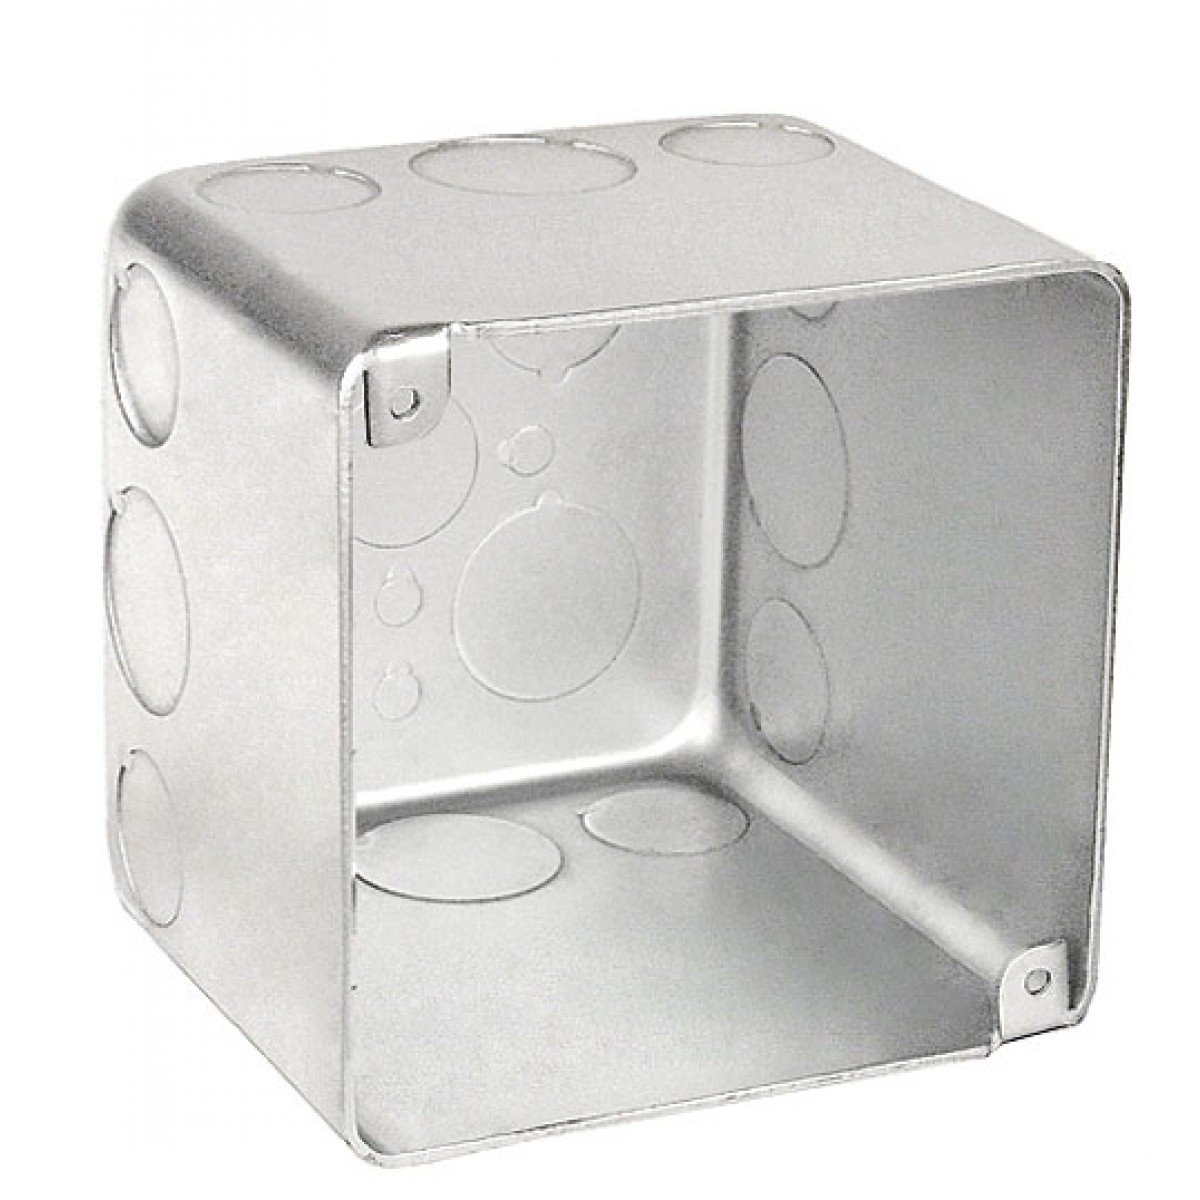 2 Pcs, 4 Square Chicago Plenum Air Tight Junction Box, 3 In. Deep, (8) 1/2 In. & (4) 3/4 In. Side Knockouts, 0.0625 Galvanized Steel For Dimmers, Cameras, Speakers, Strobes, Signals by Garvin (Image #1)